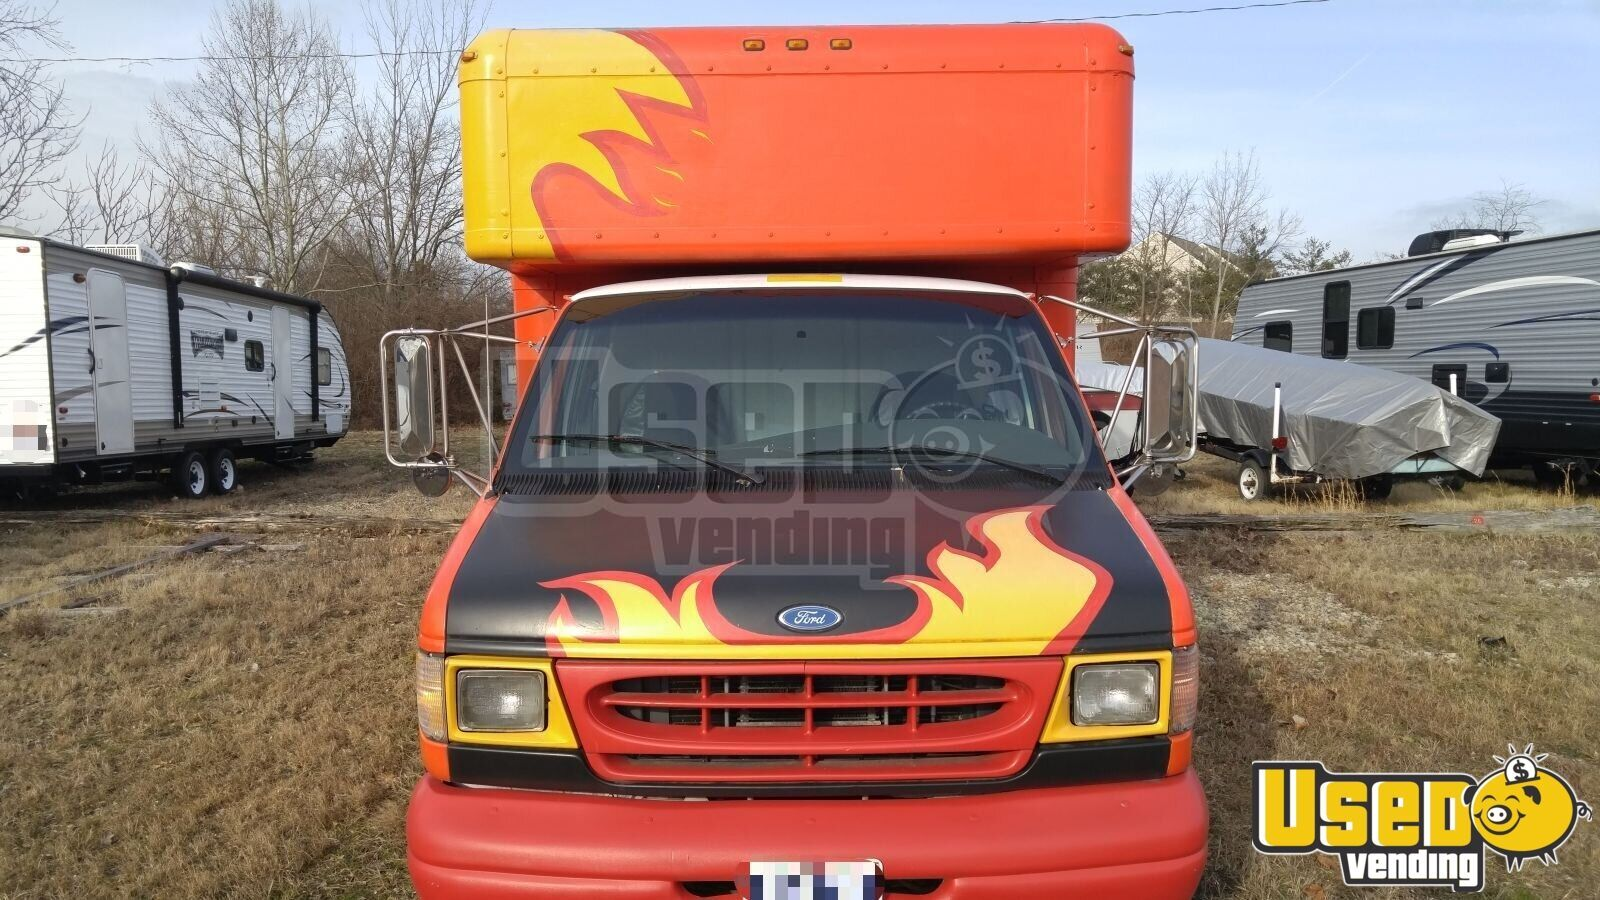 1997 Ford Box Van Food Truck Air Conditioning Ohio Gas Engine for Sale - 2